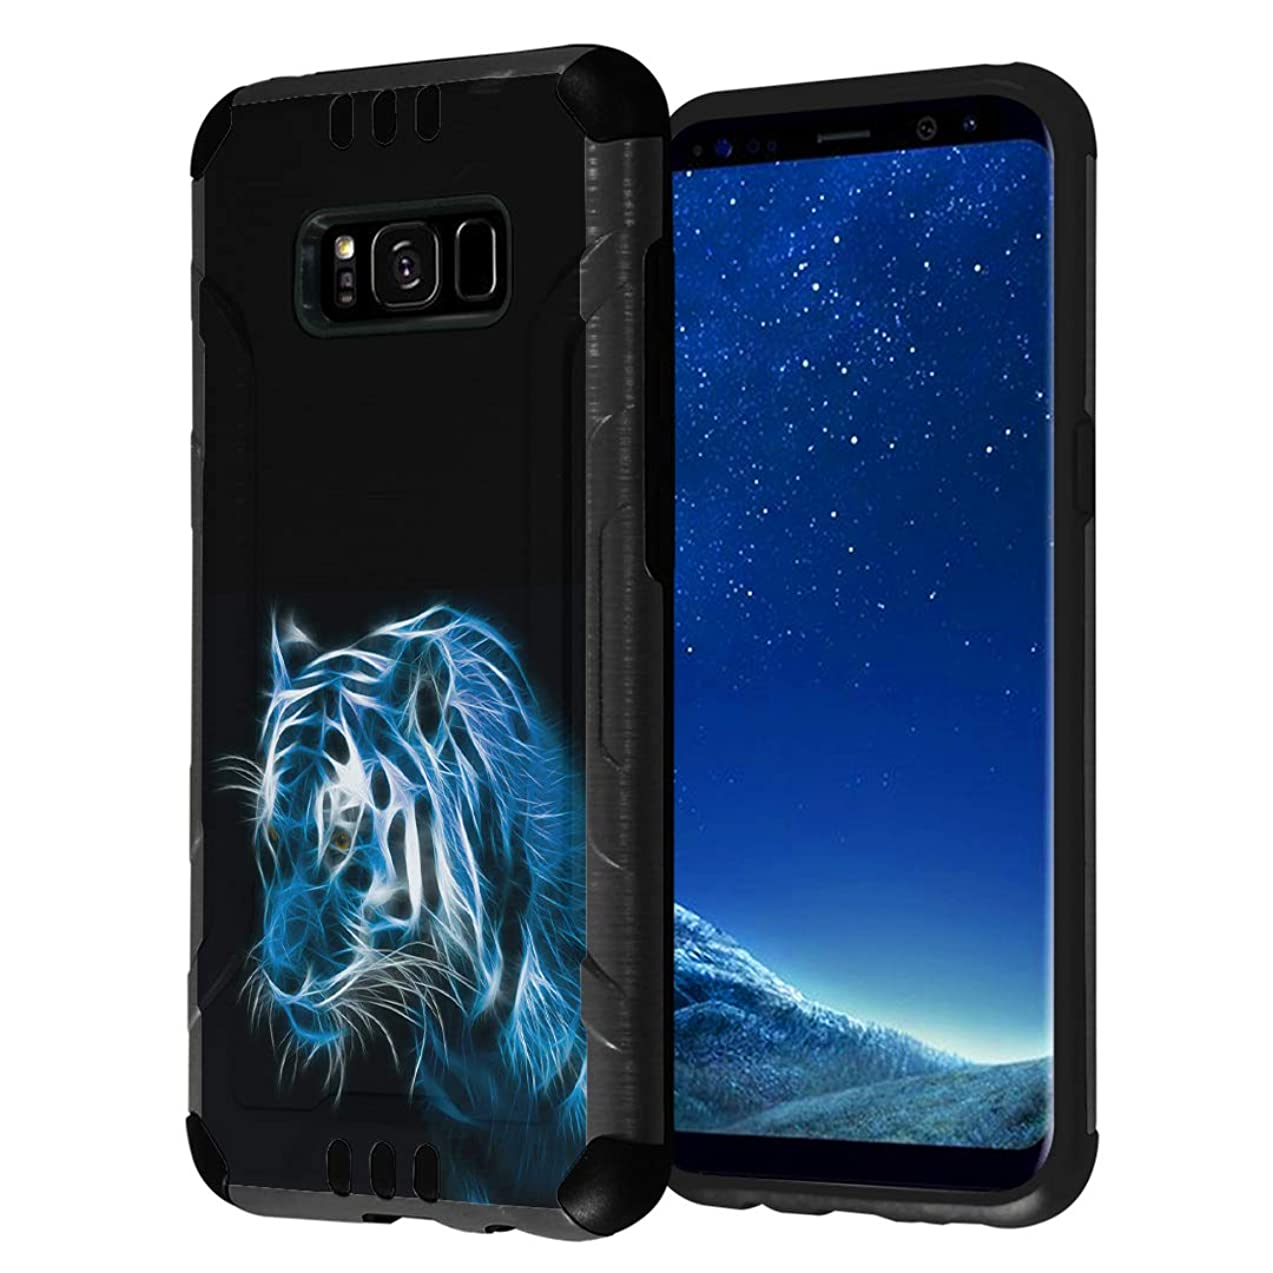 Capsule Case Compatible with Galaxy S8 [Hybrid Fusion Dual Layer Slick Armor Cushion Case Black] for Samsung Galaxy S8 SM-G950 SPHG950 - (Blue Tiger)